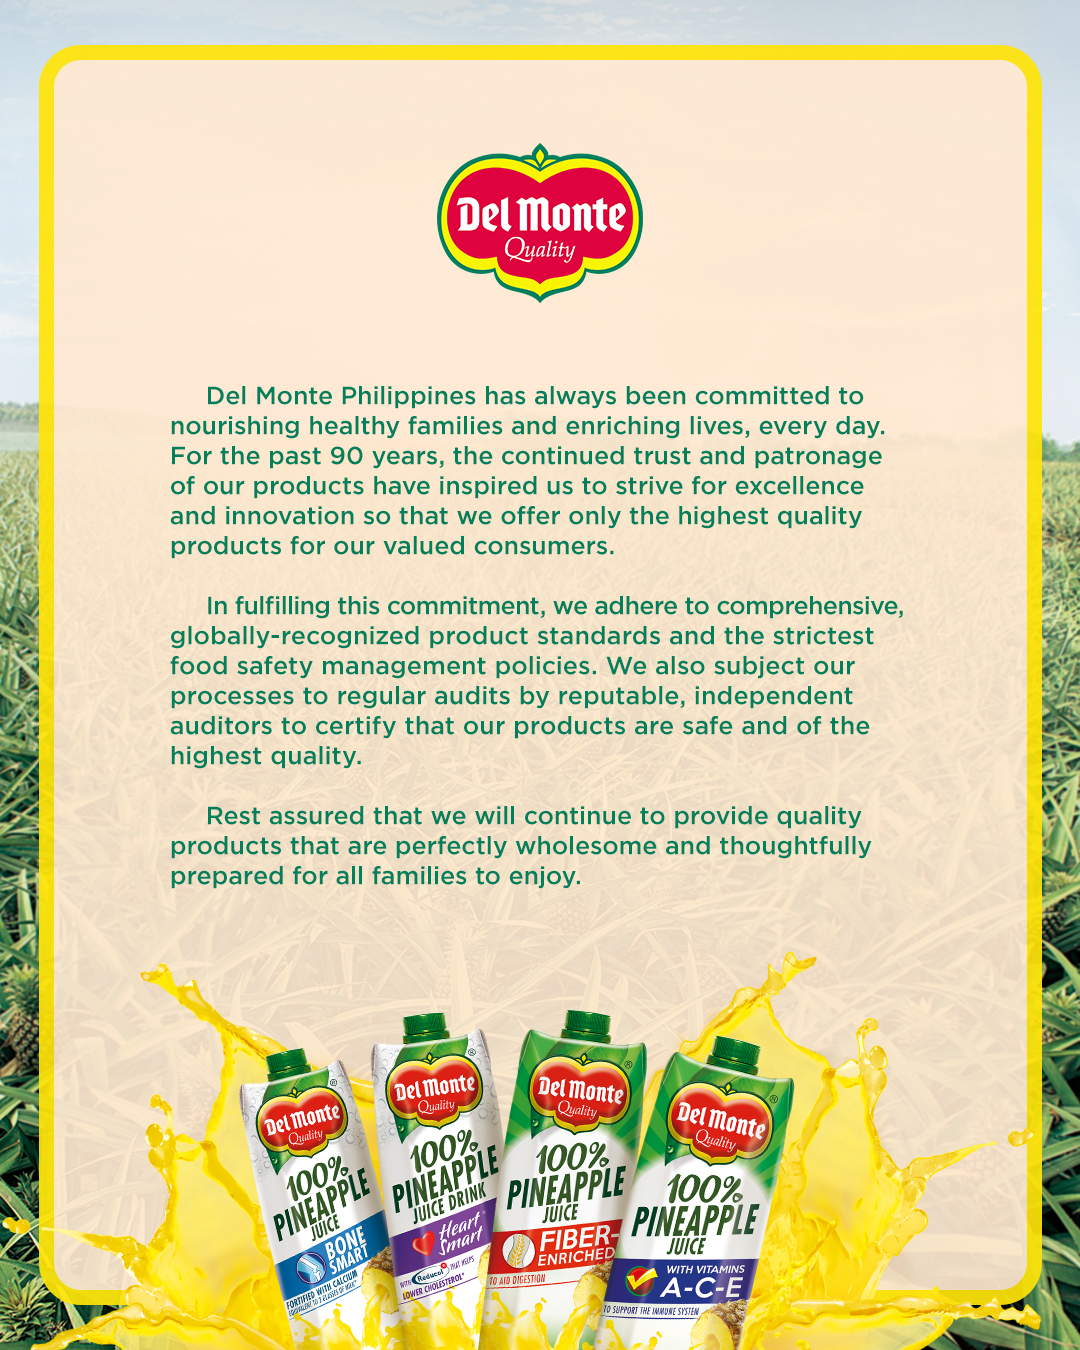 Del Monte Philippines has always been committed to nourishing healthy families and enriching lives, every day. For the past 90 years, the continued trust and patronage of our products have inspired us to strive for excellence and innovation so that we offer only the highest quality products for our valued consumers. In fulfilling this commitment, we adhere to comprehensive, globally-recognized product standards and strictest food safety management policies. We also subject our processes to regular audits by reputable, independent auditors to certify that our product are safe and of the highest quality. Rest assured that we will continue to provide quality products that are perfectly wholesome and thoughtfully prepared for all families to enjoy.